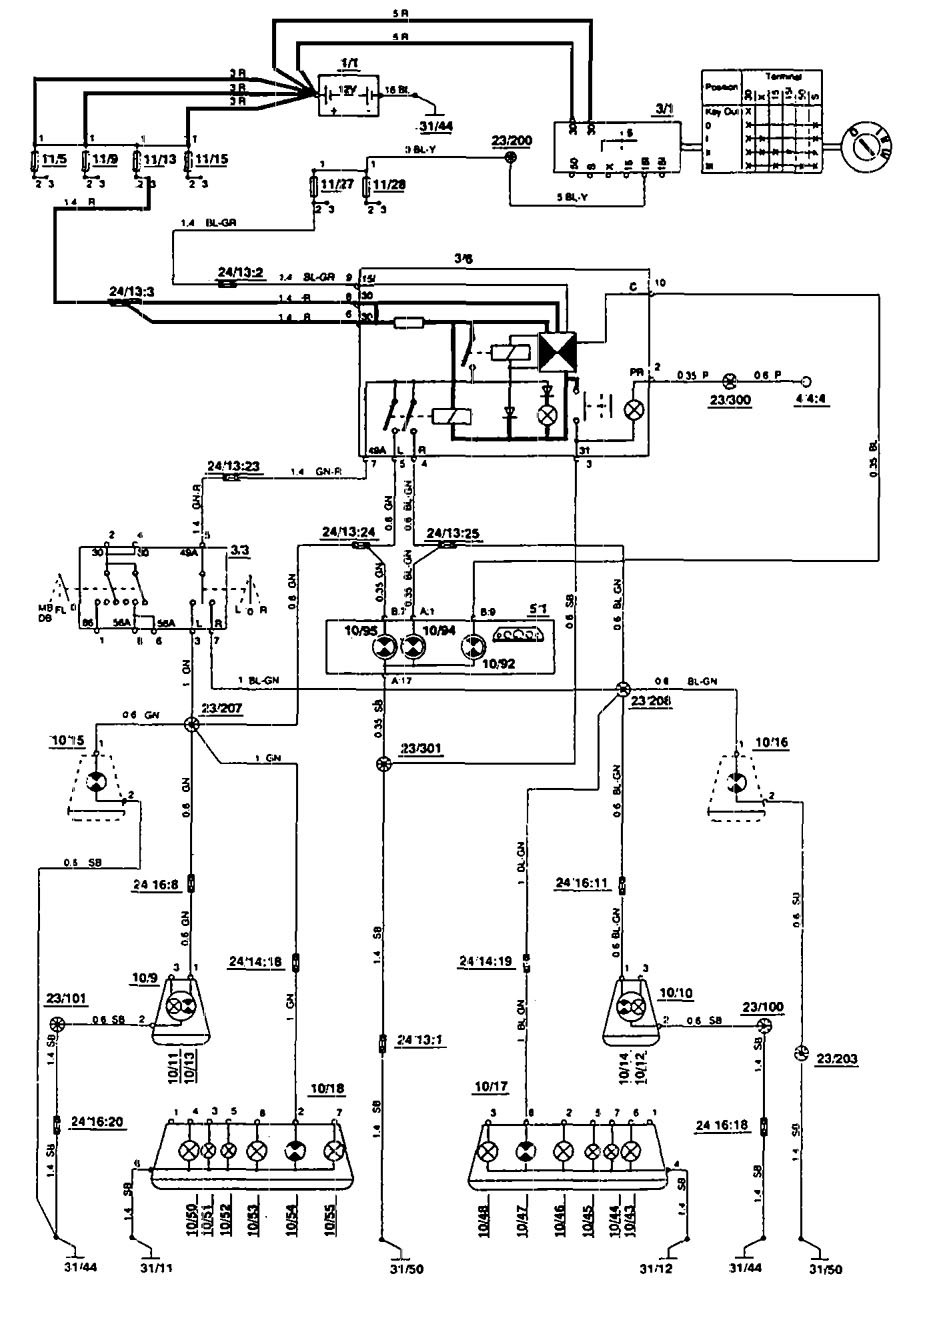 hight resolution of 850 volvo fog lamp wiring diagram schematic diagrams new holland 1920 tractor wiring diagram new holland